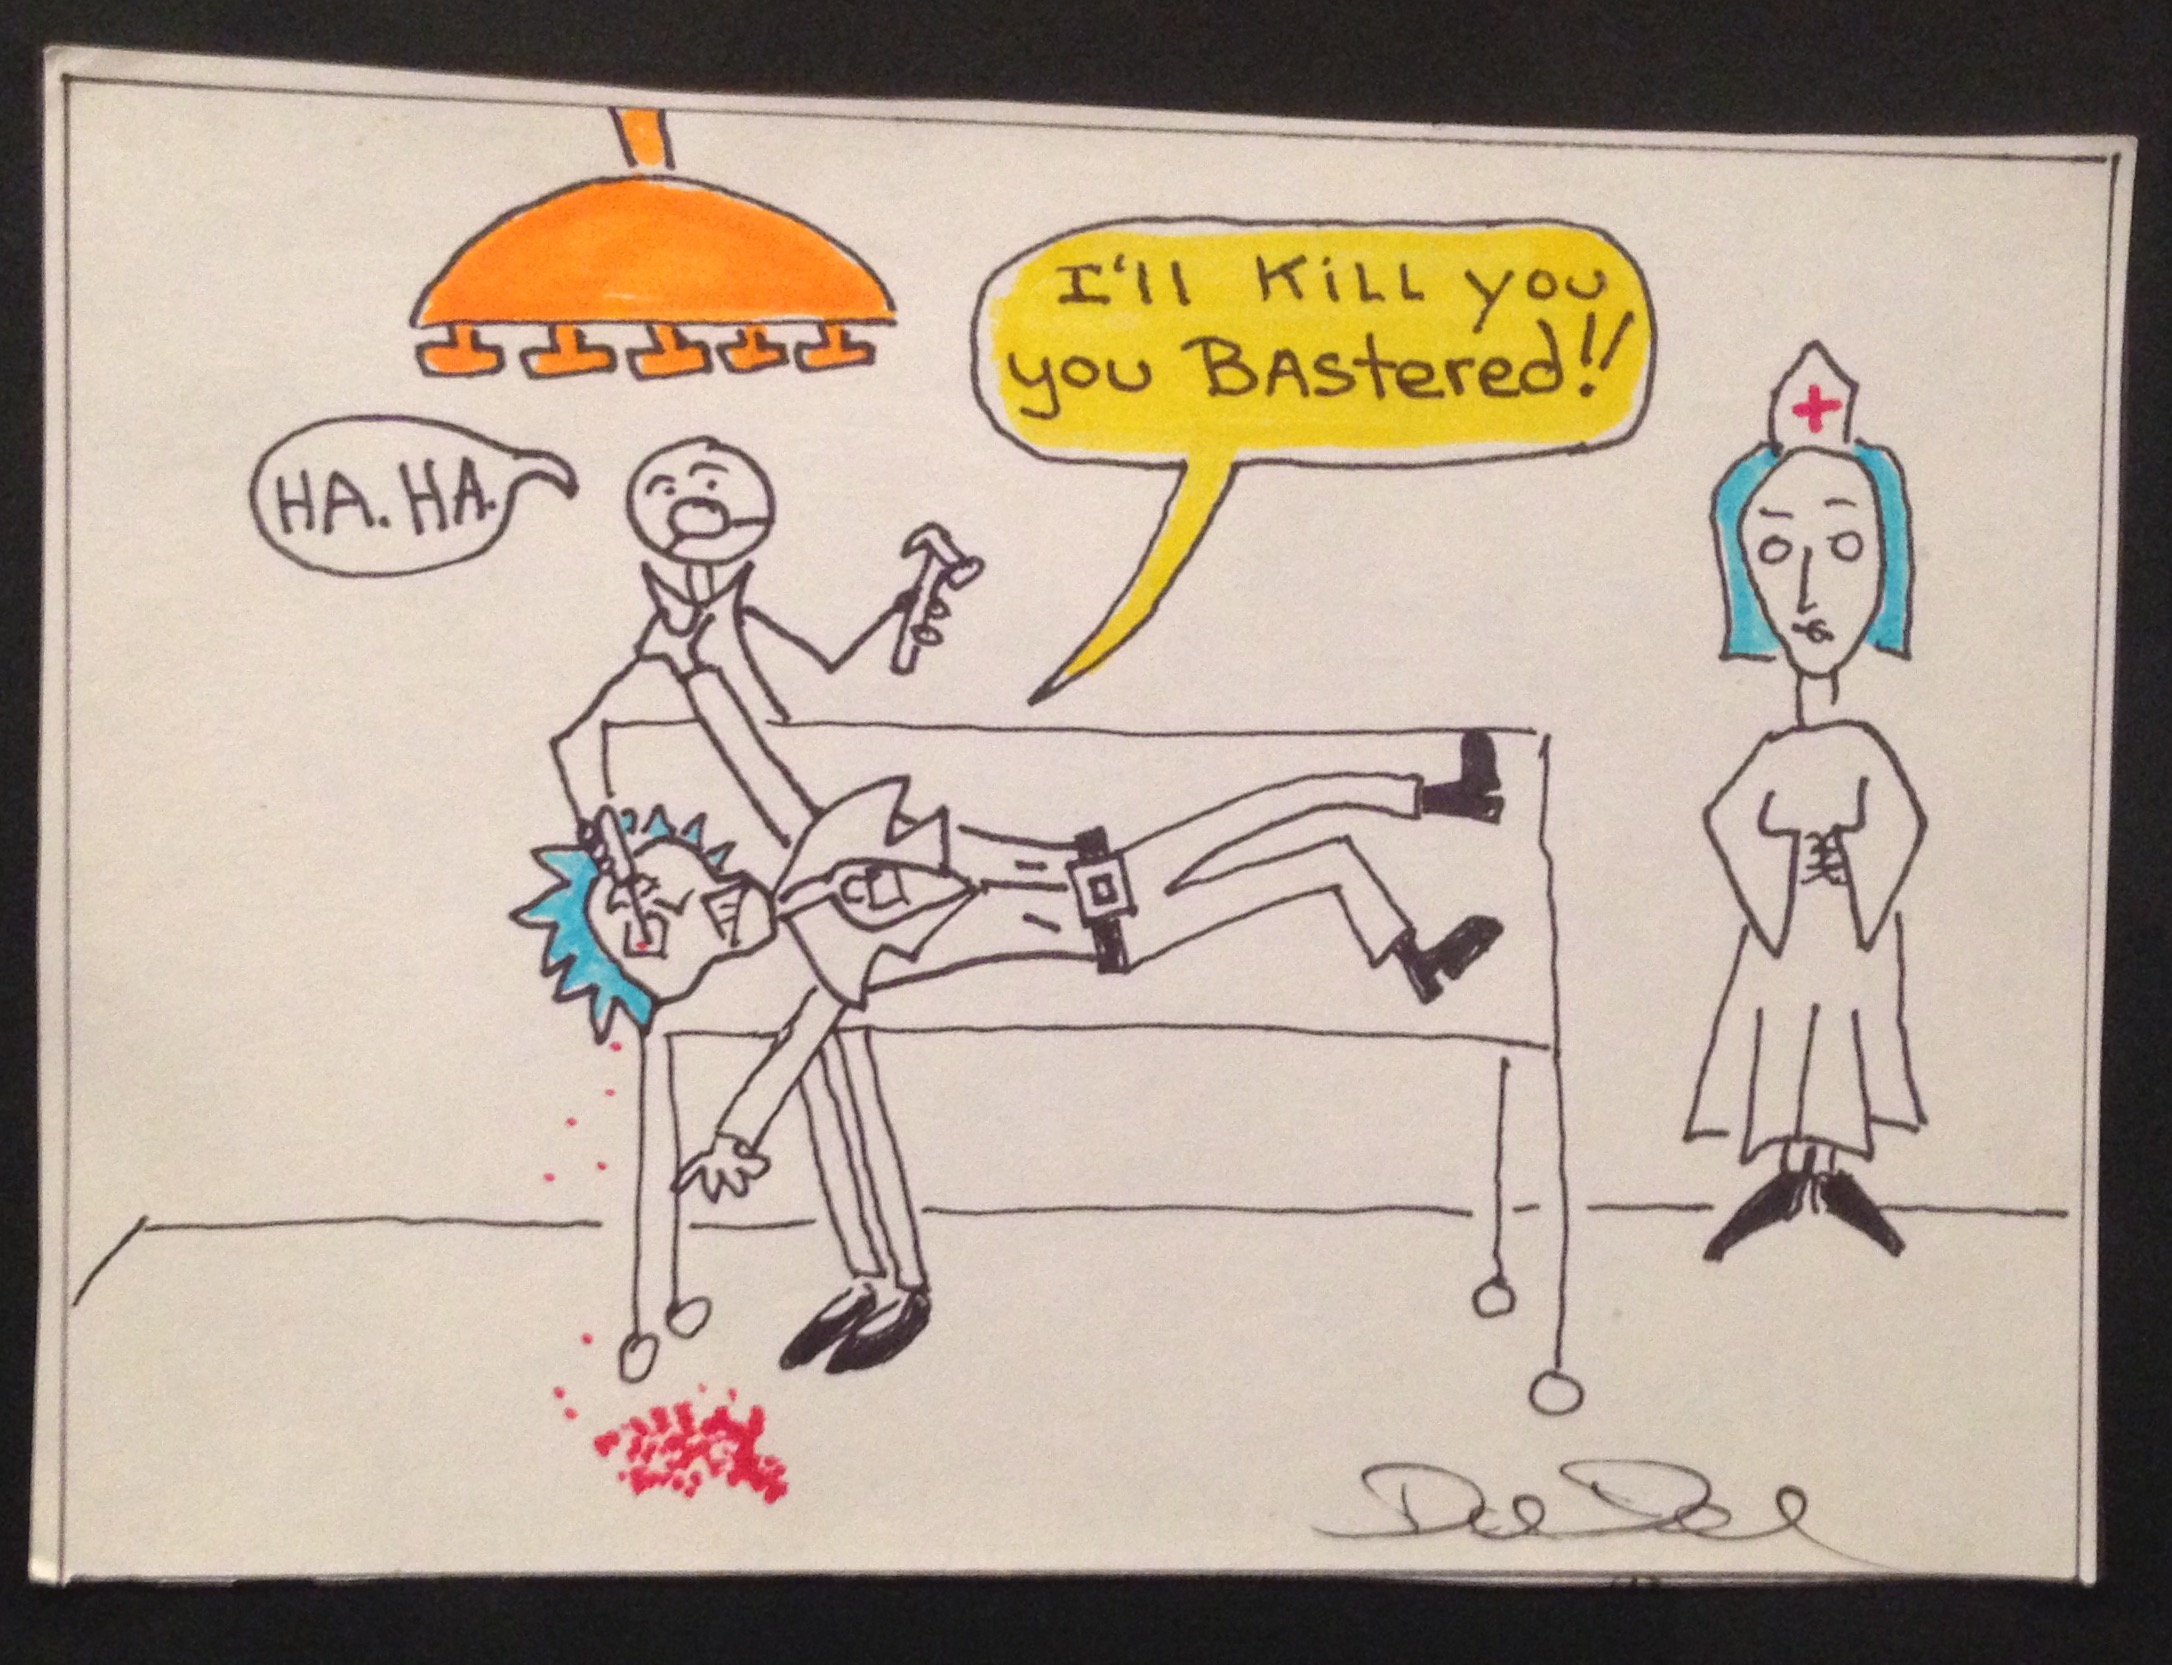 Excerpt from Sid Vicious/Hotel Chelsea storyboard, circa 1977. Photo by SFAQ. Courtesy of